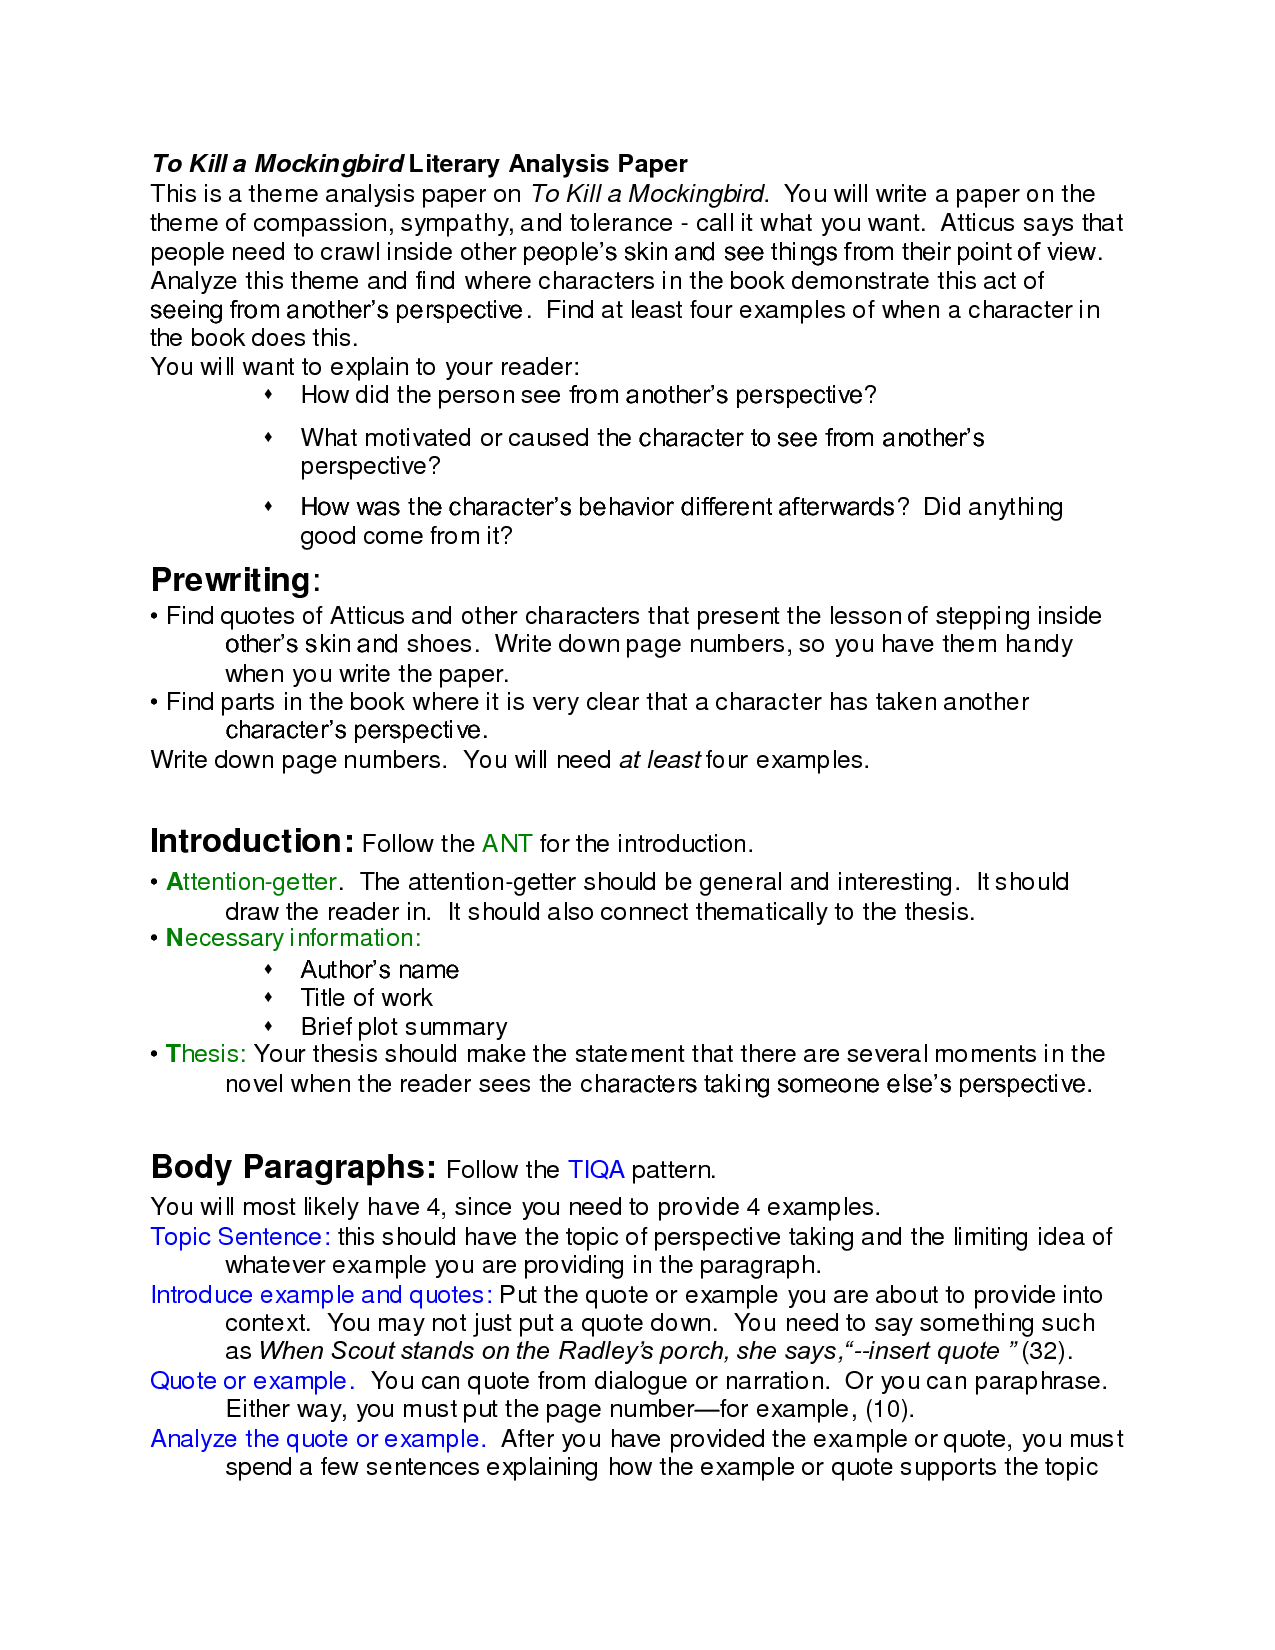 essay writing on compassion Read compassion free essay and over 86,000 other research documents compassion this essay on compassion fatigue research paper writing.